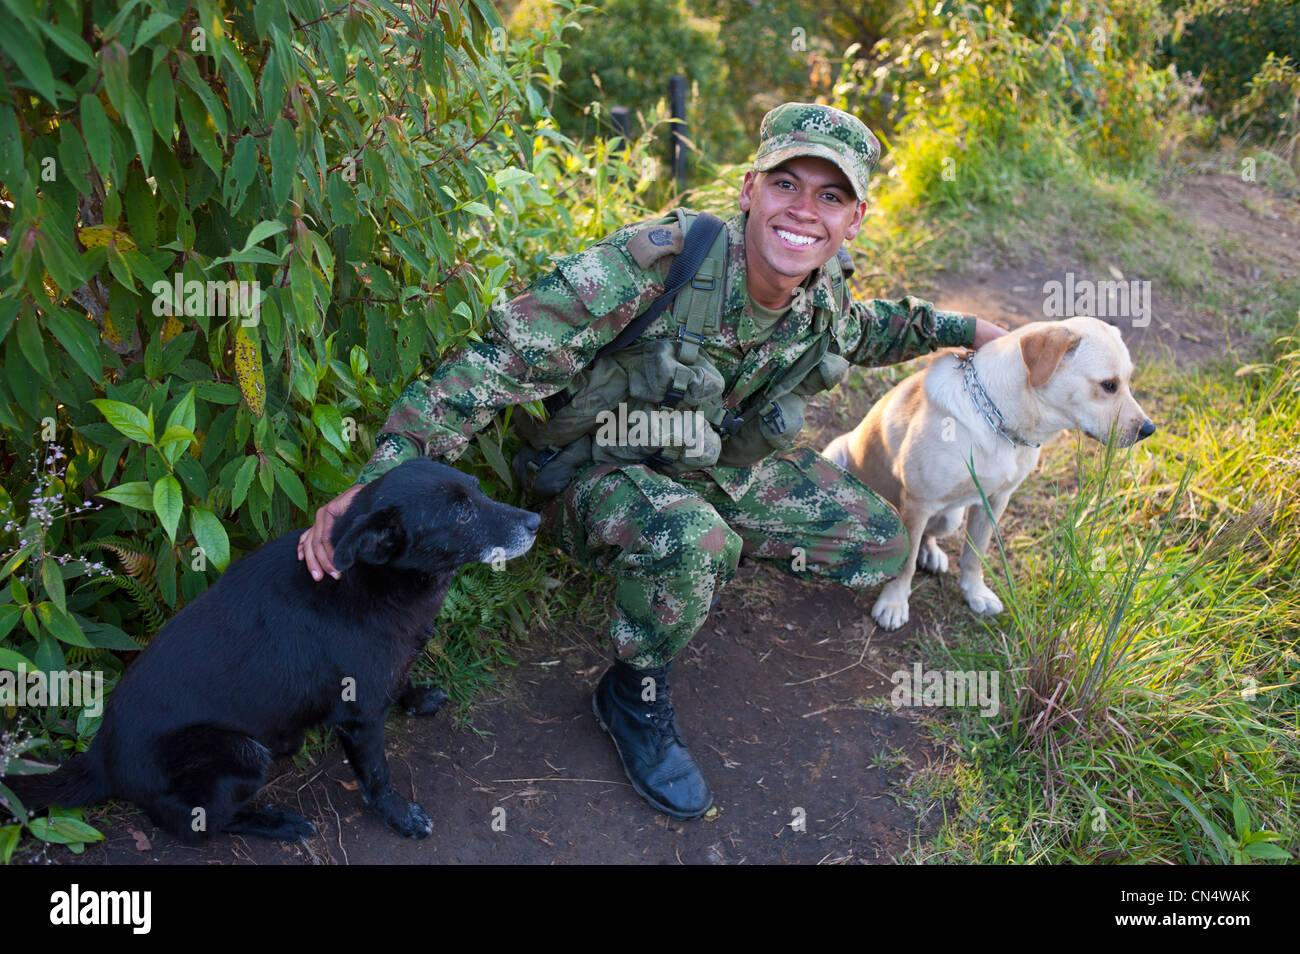 Columbia, Quindio Department, Zona Cafetera (the Coffee Area), Salento village, the colombian army - Stock Image